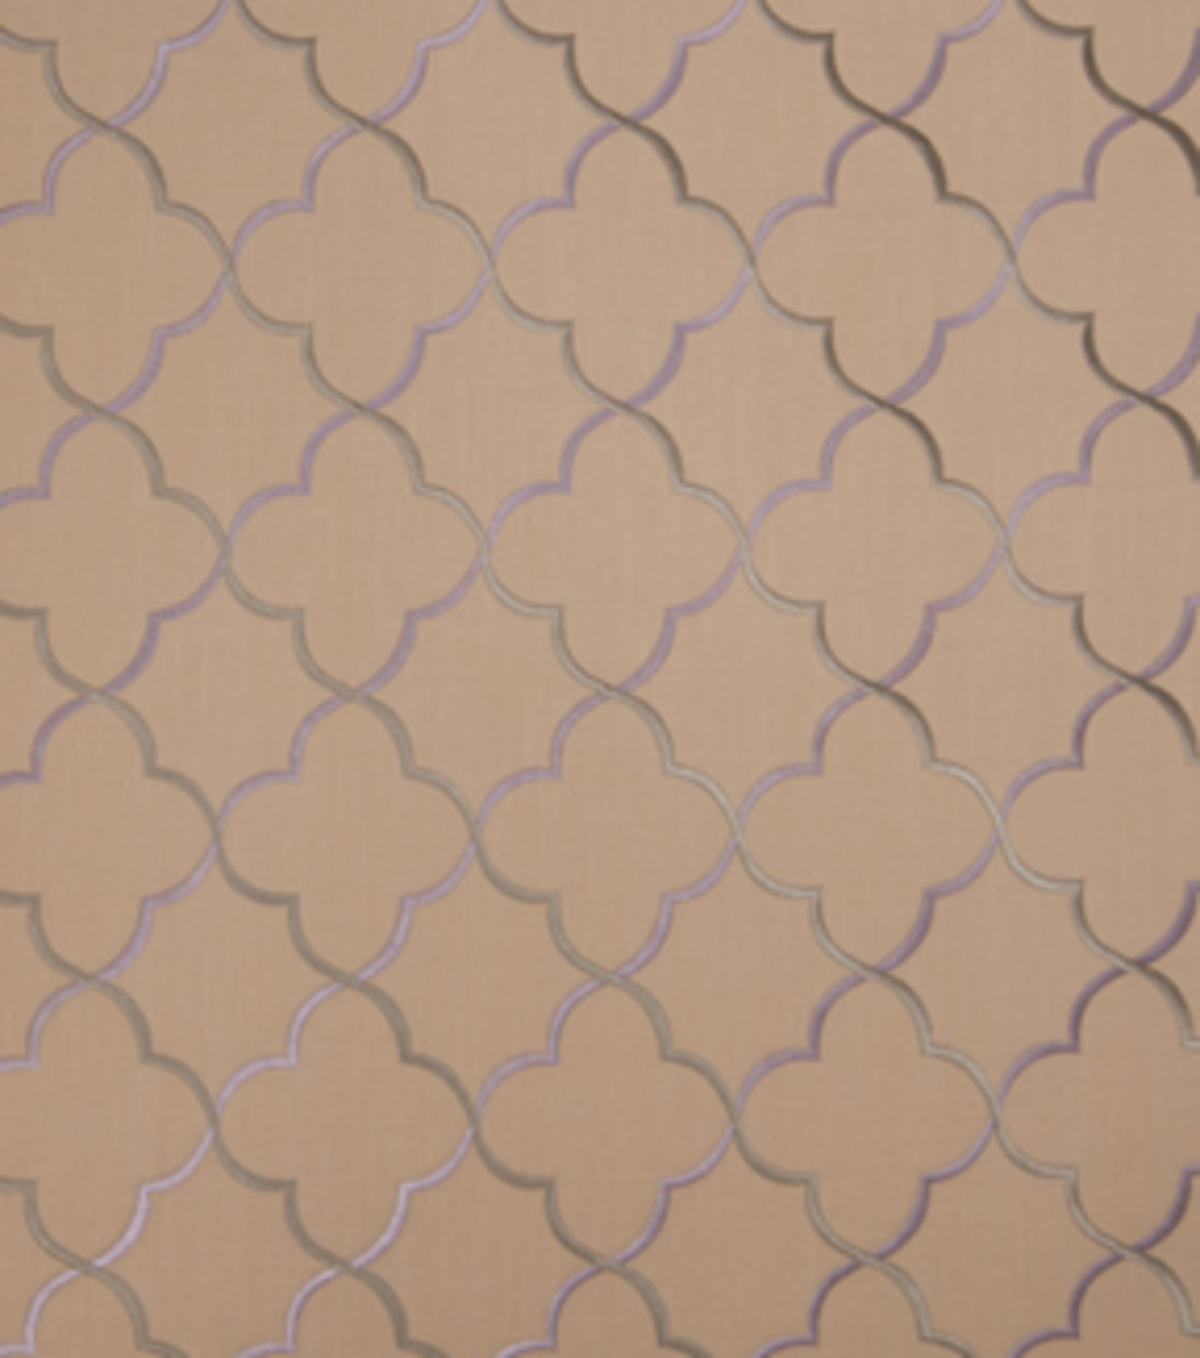 Home Decor 8\u0022x8\u0022 Fabric Swatch-Eaton Square Mcbride Amethyst